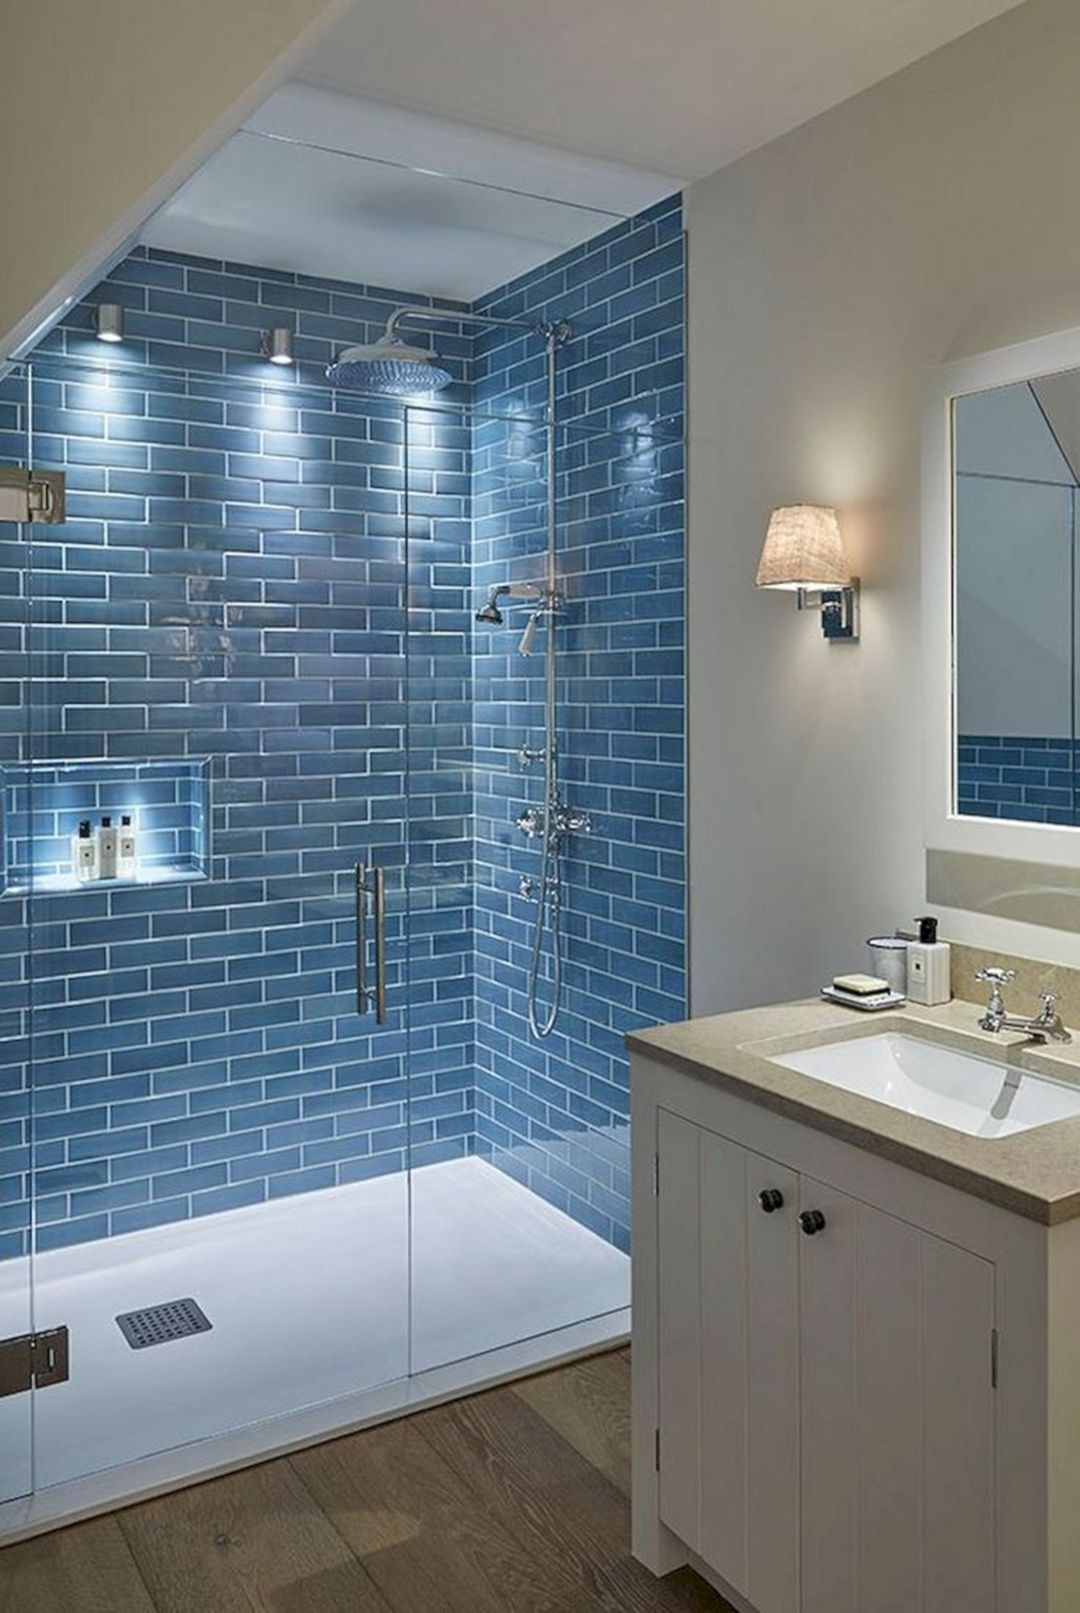 25 Simple Bathroom Remodelling Ideas For Your Bathing Comfort Simplebathroomdesigns It Seems Im In 2020 Badezimmer Umgestaltung Badezimmer Badezimmer Innenausstattung